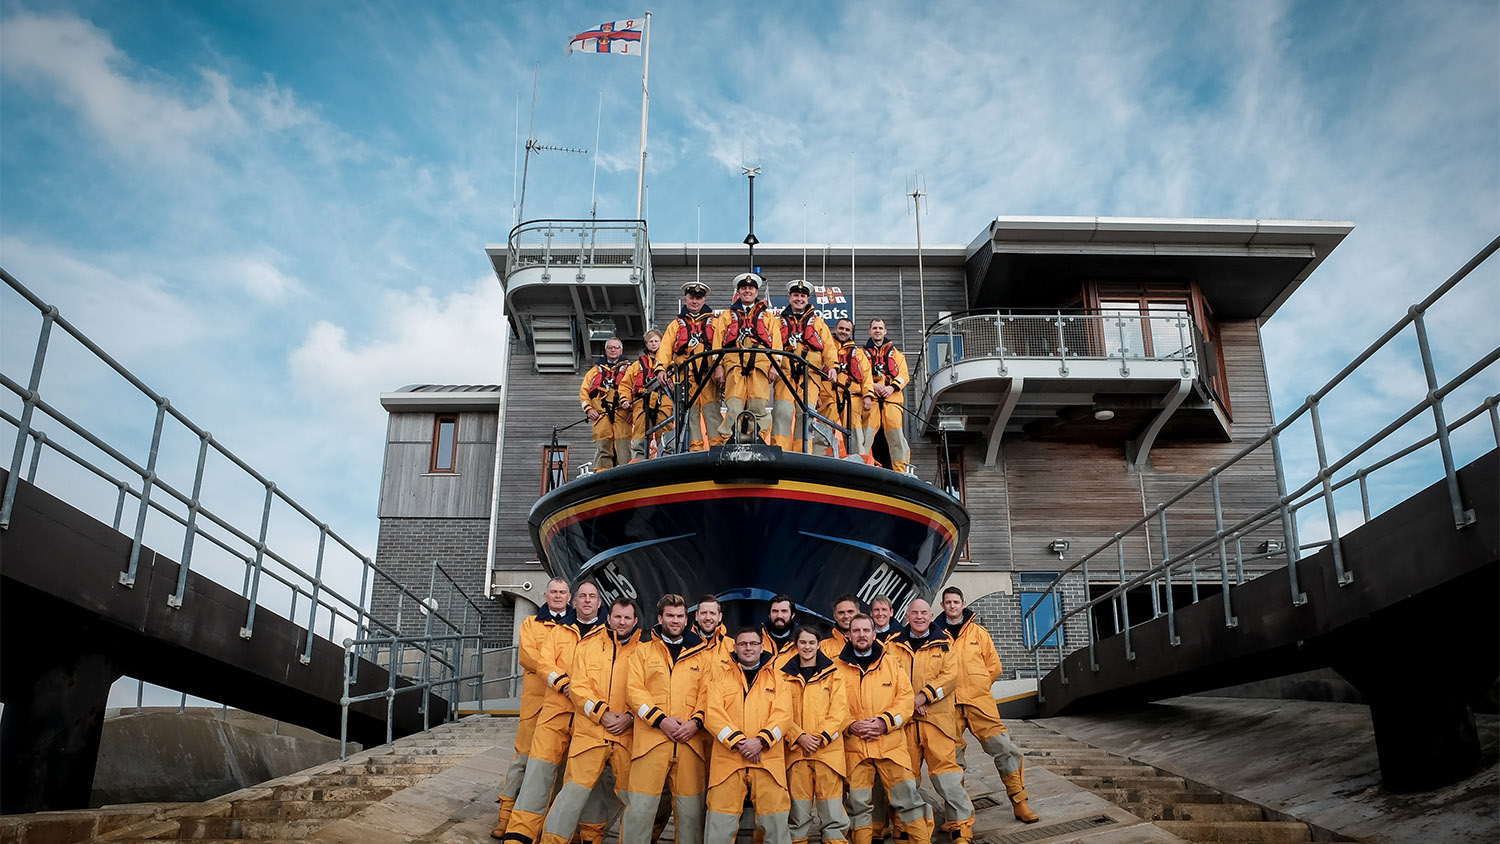 Shoreham lifeboat crew